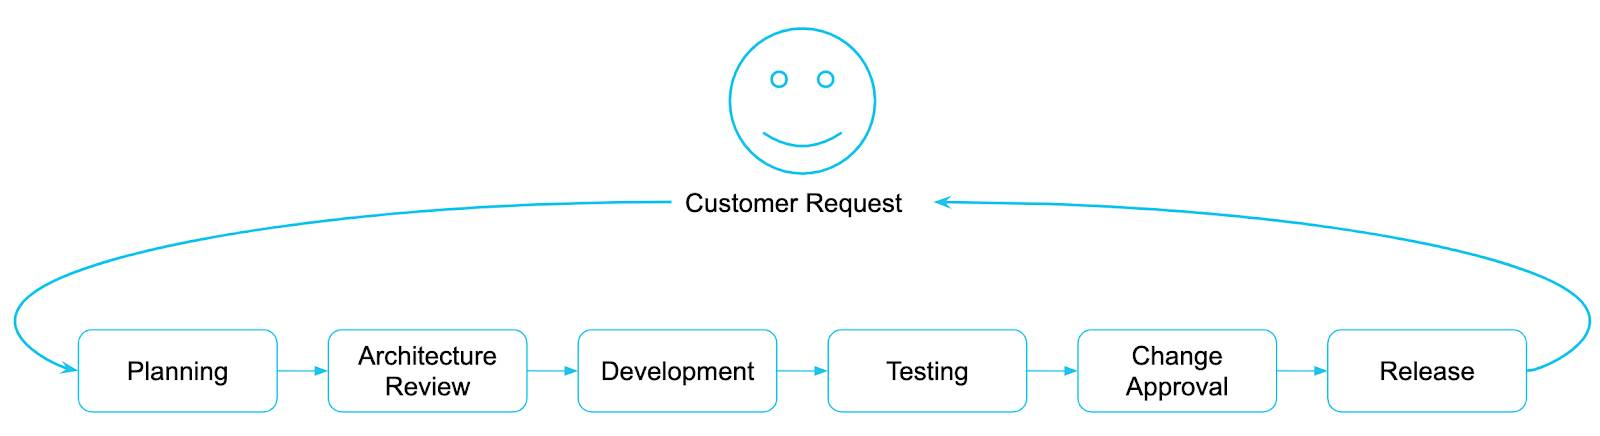 Diagram showing the sequence of processes in fulfilling customer requests